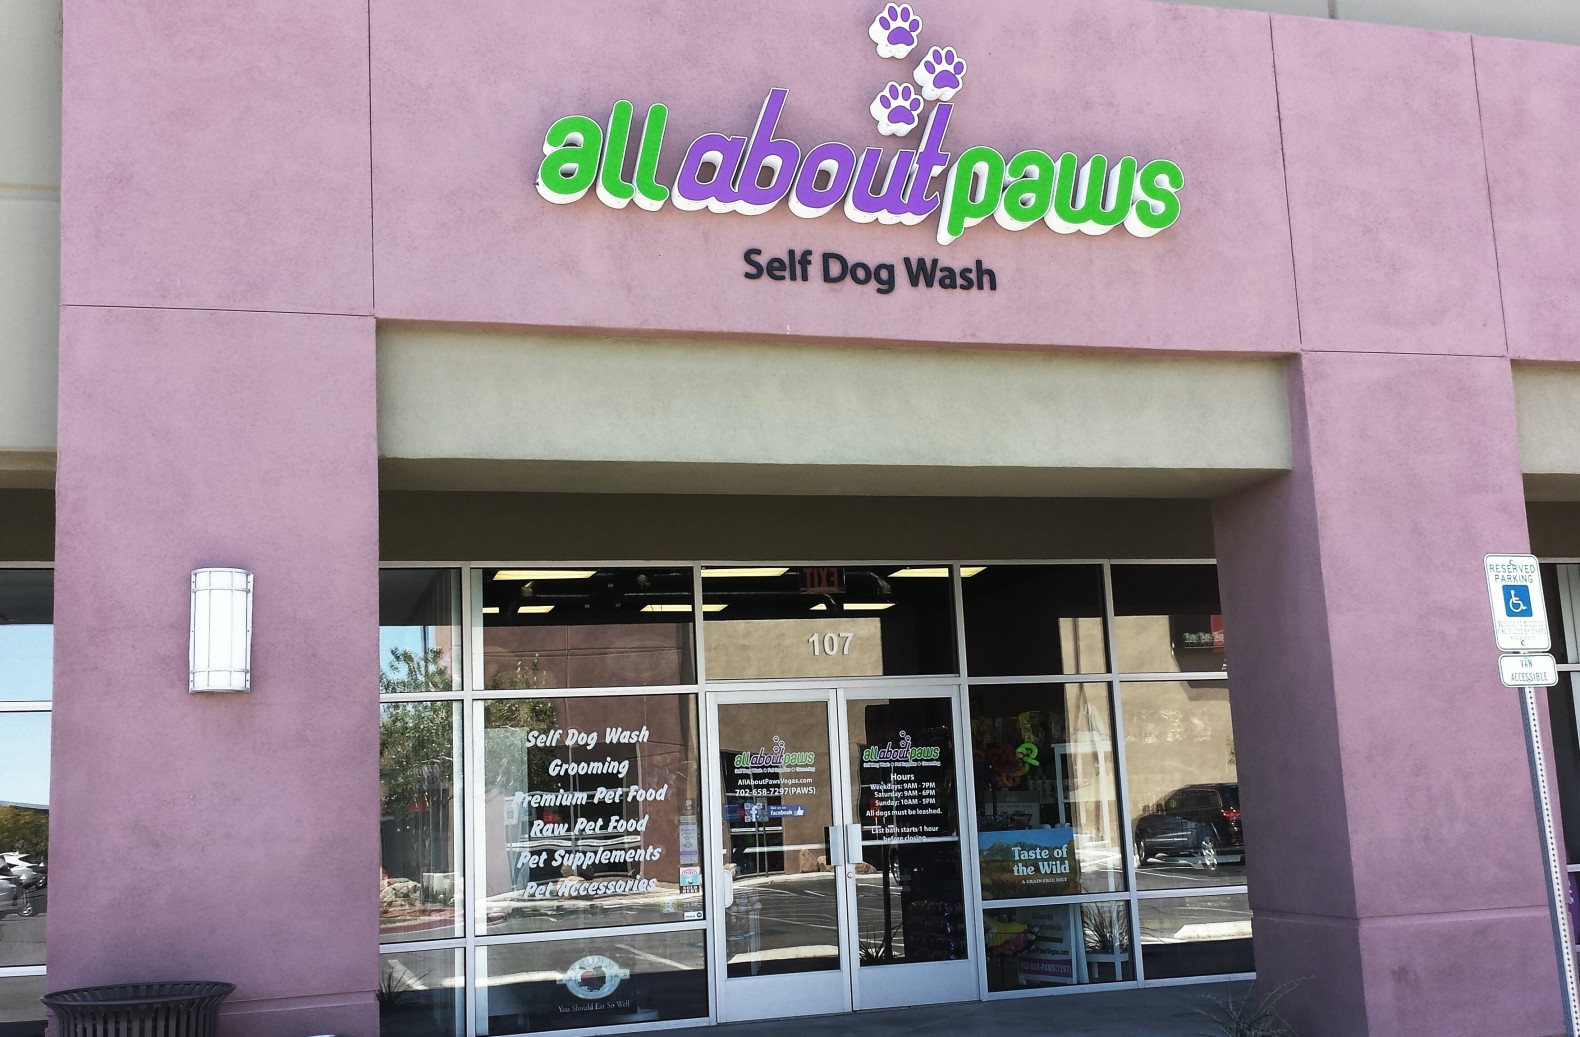 All about paws north las vegas dog grooming self wash all about paws pet supplies 1 2 3 a r do it yourself solutioingenieria Image collections